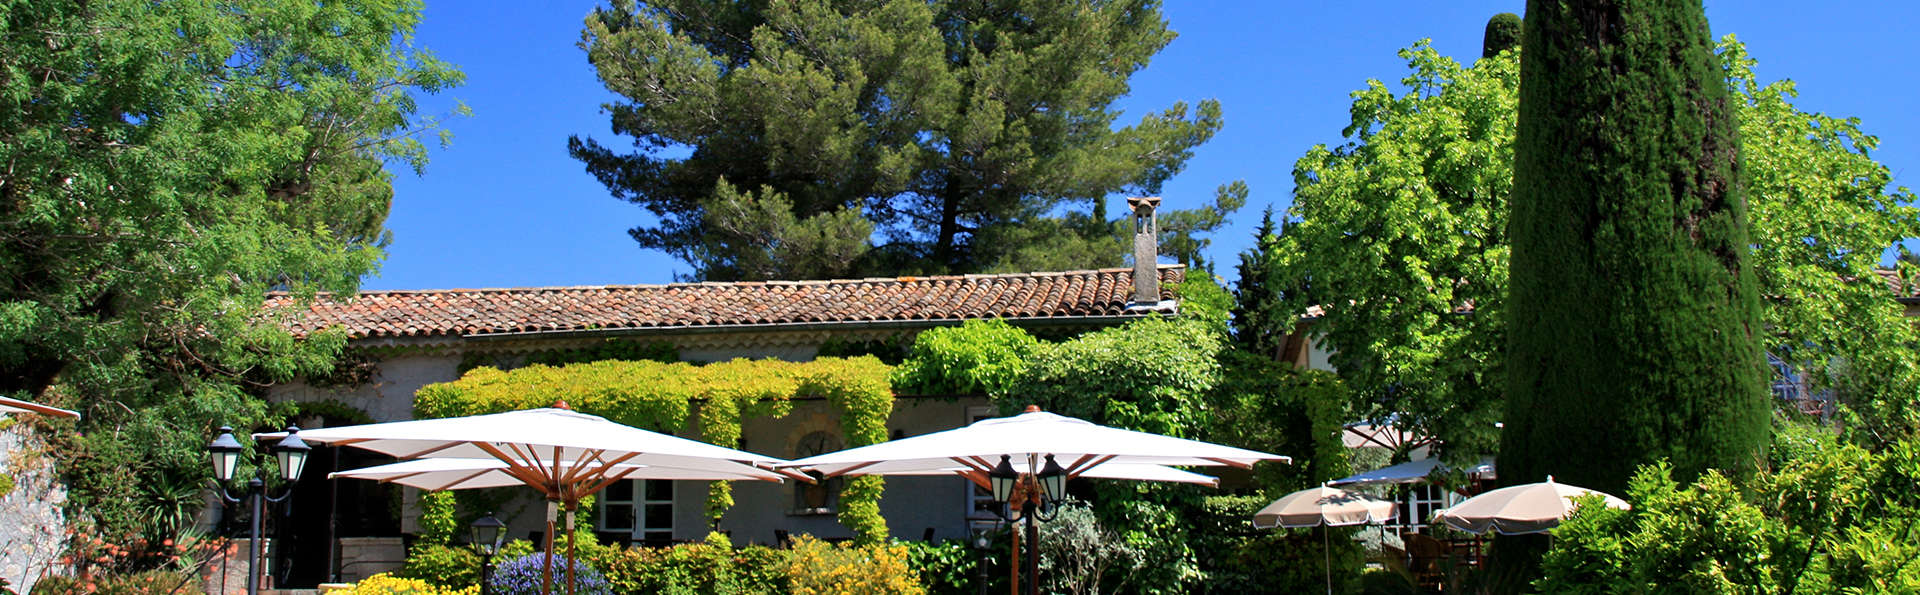 The Originals Relais d'Aubagne - edit_garden3.jpg